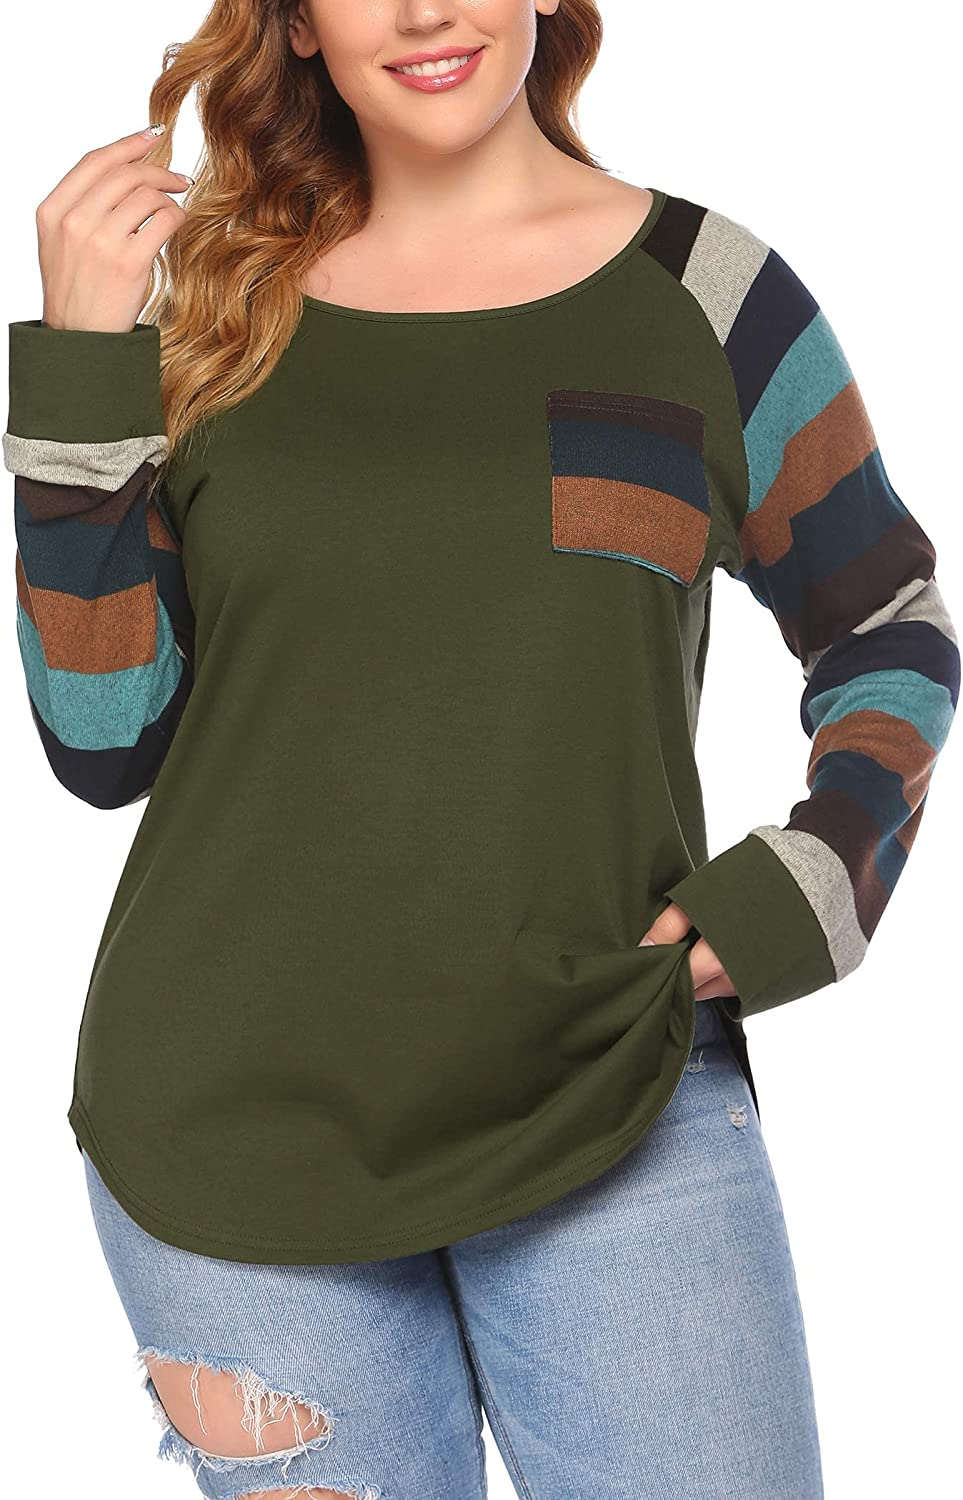 IN'VOLAND Women's Plus Size Tee Shirt Striped Long Sleeve Tunic Top Raglan Scoop Neck Cotton Blouse